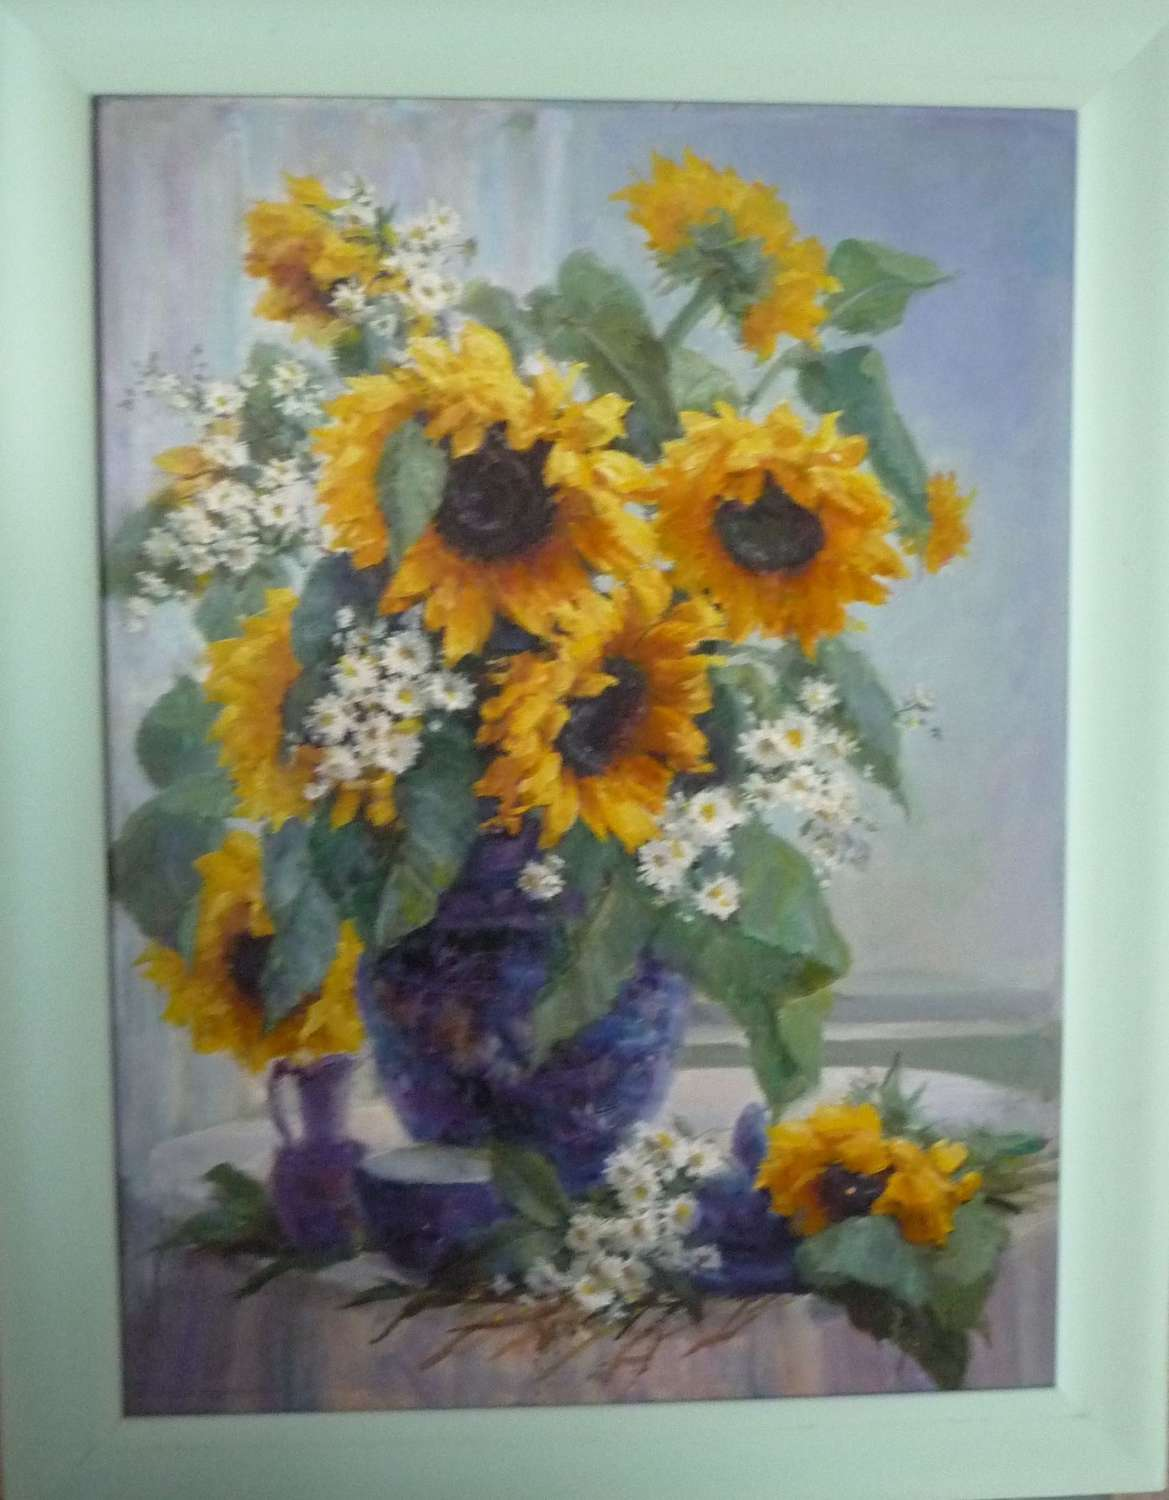 'Sun flowers 'oil painting by J.Rockingham